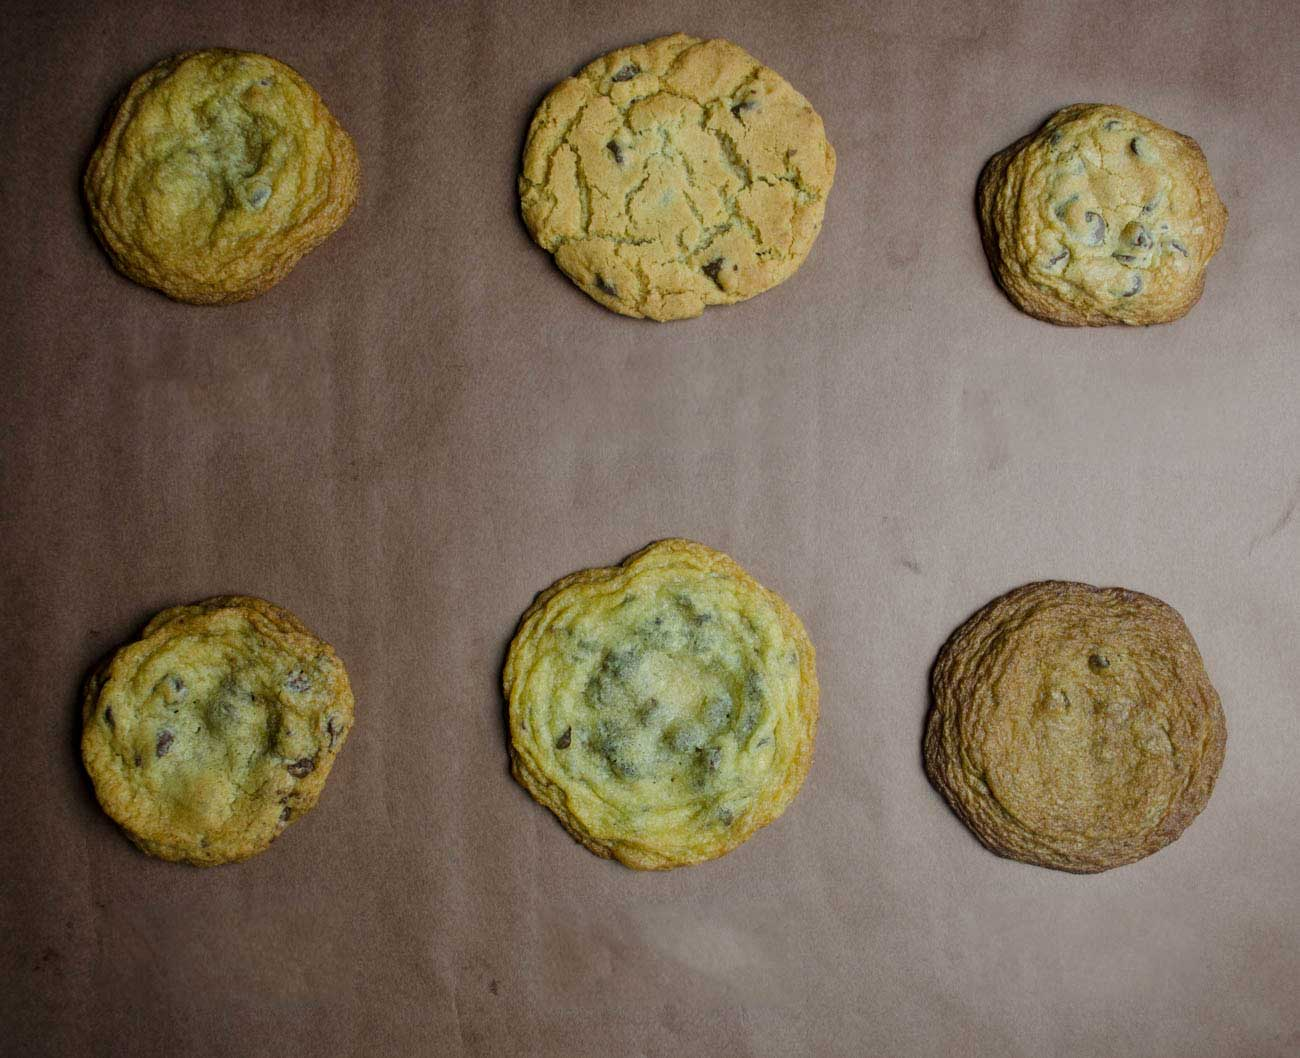 chocolate-chip-cookies--no-labels